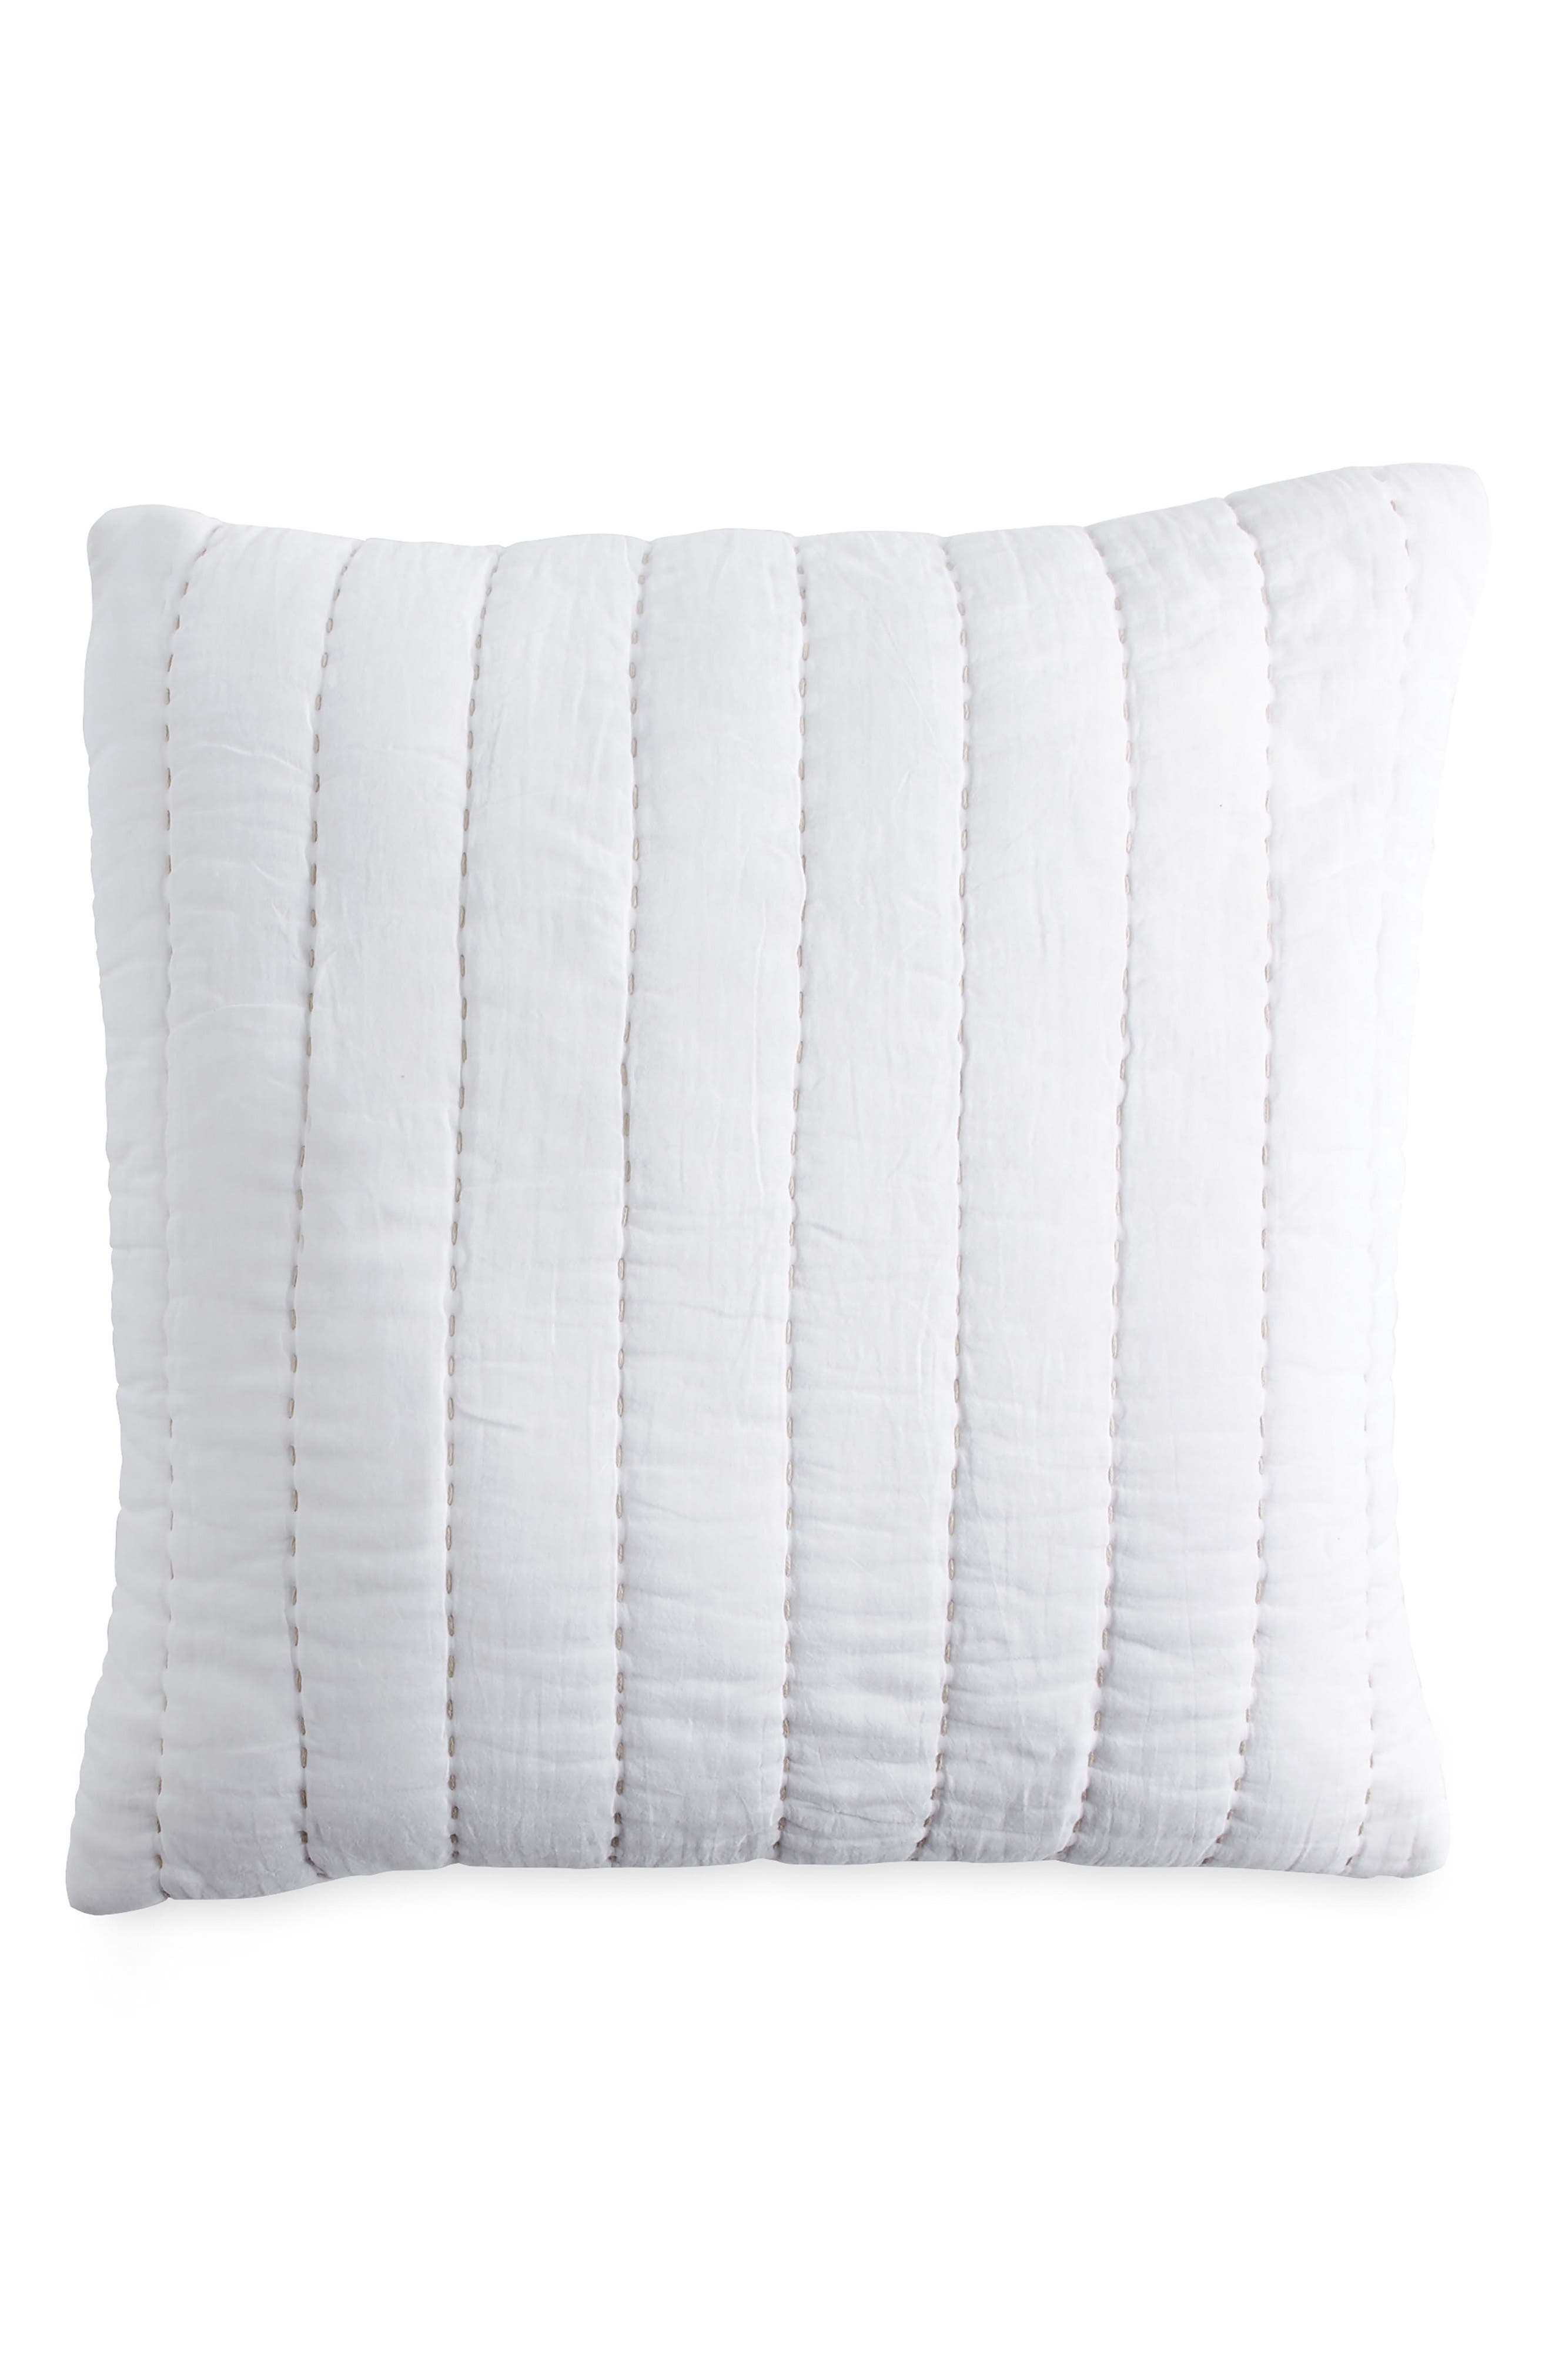 DKNY, Quilted Accent Pillow, Main thumbnail 1, color, WHITE